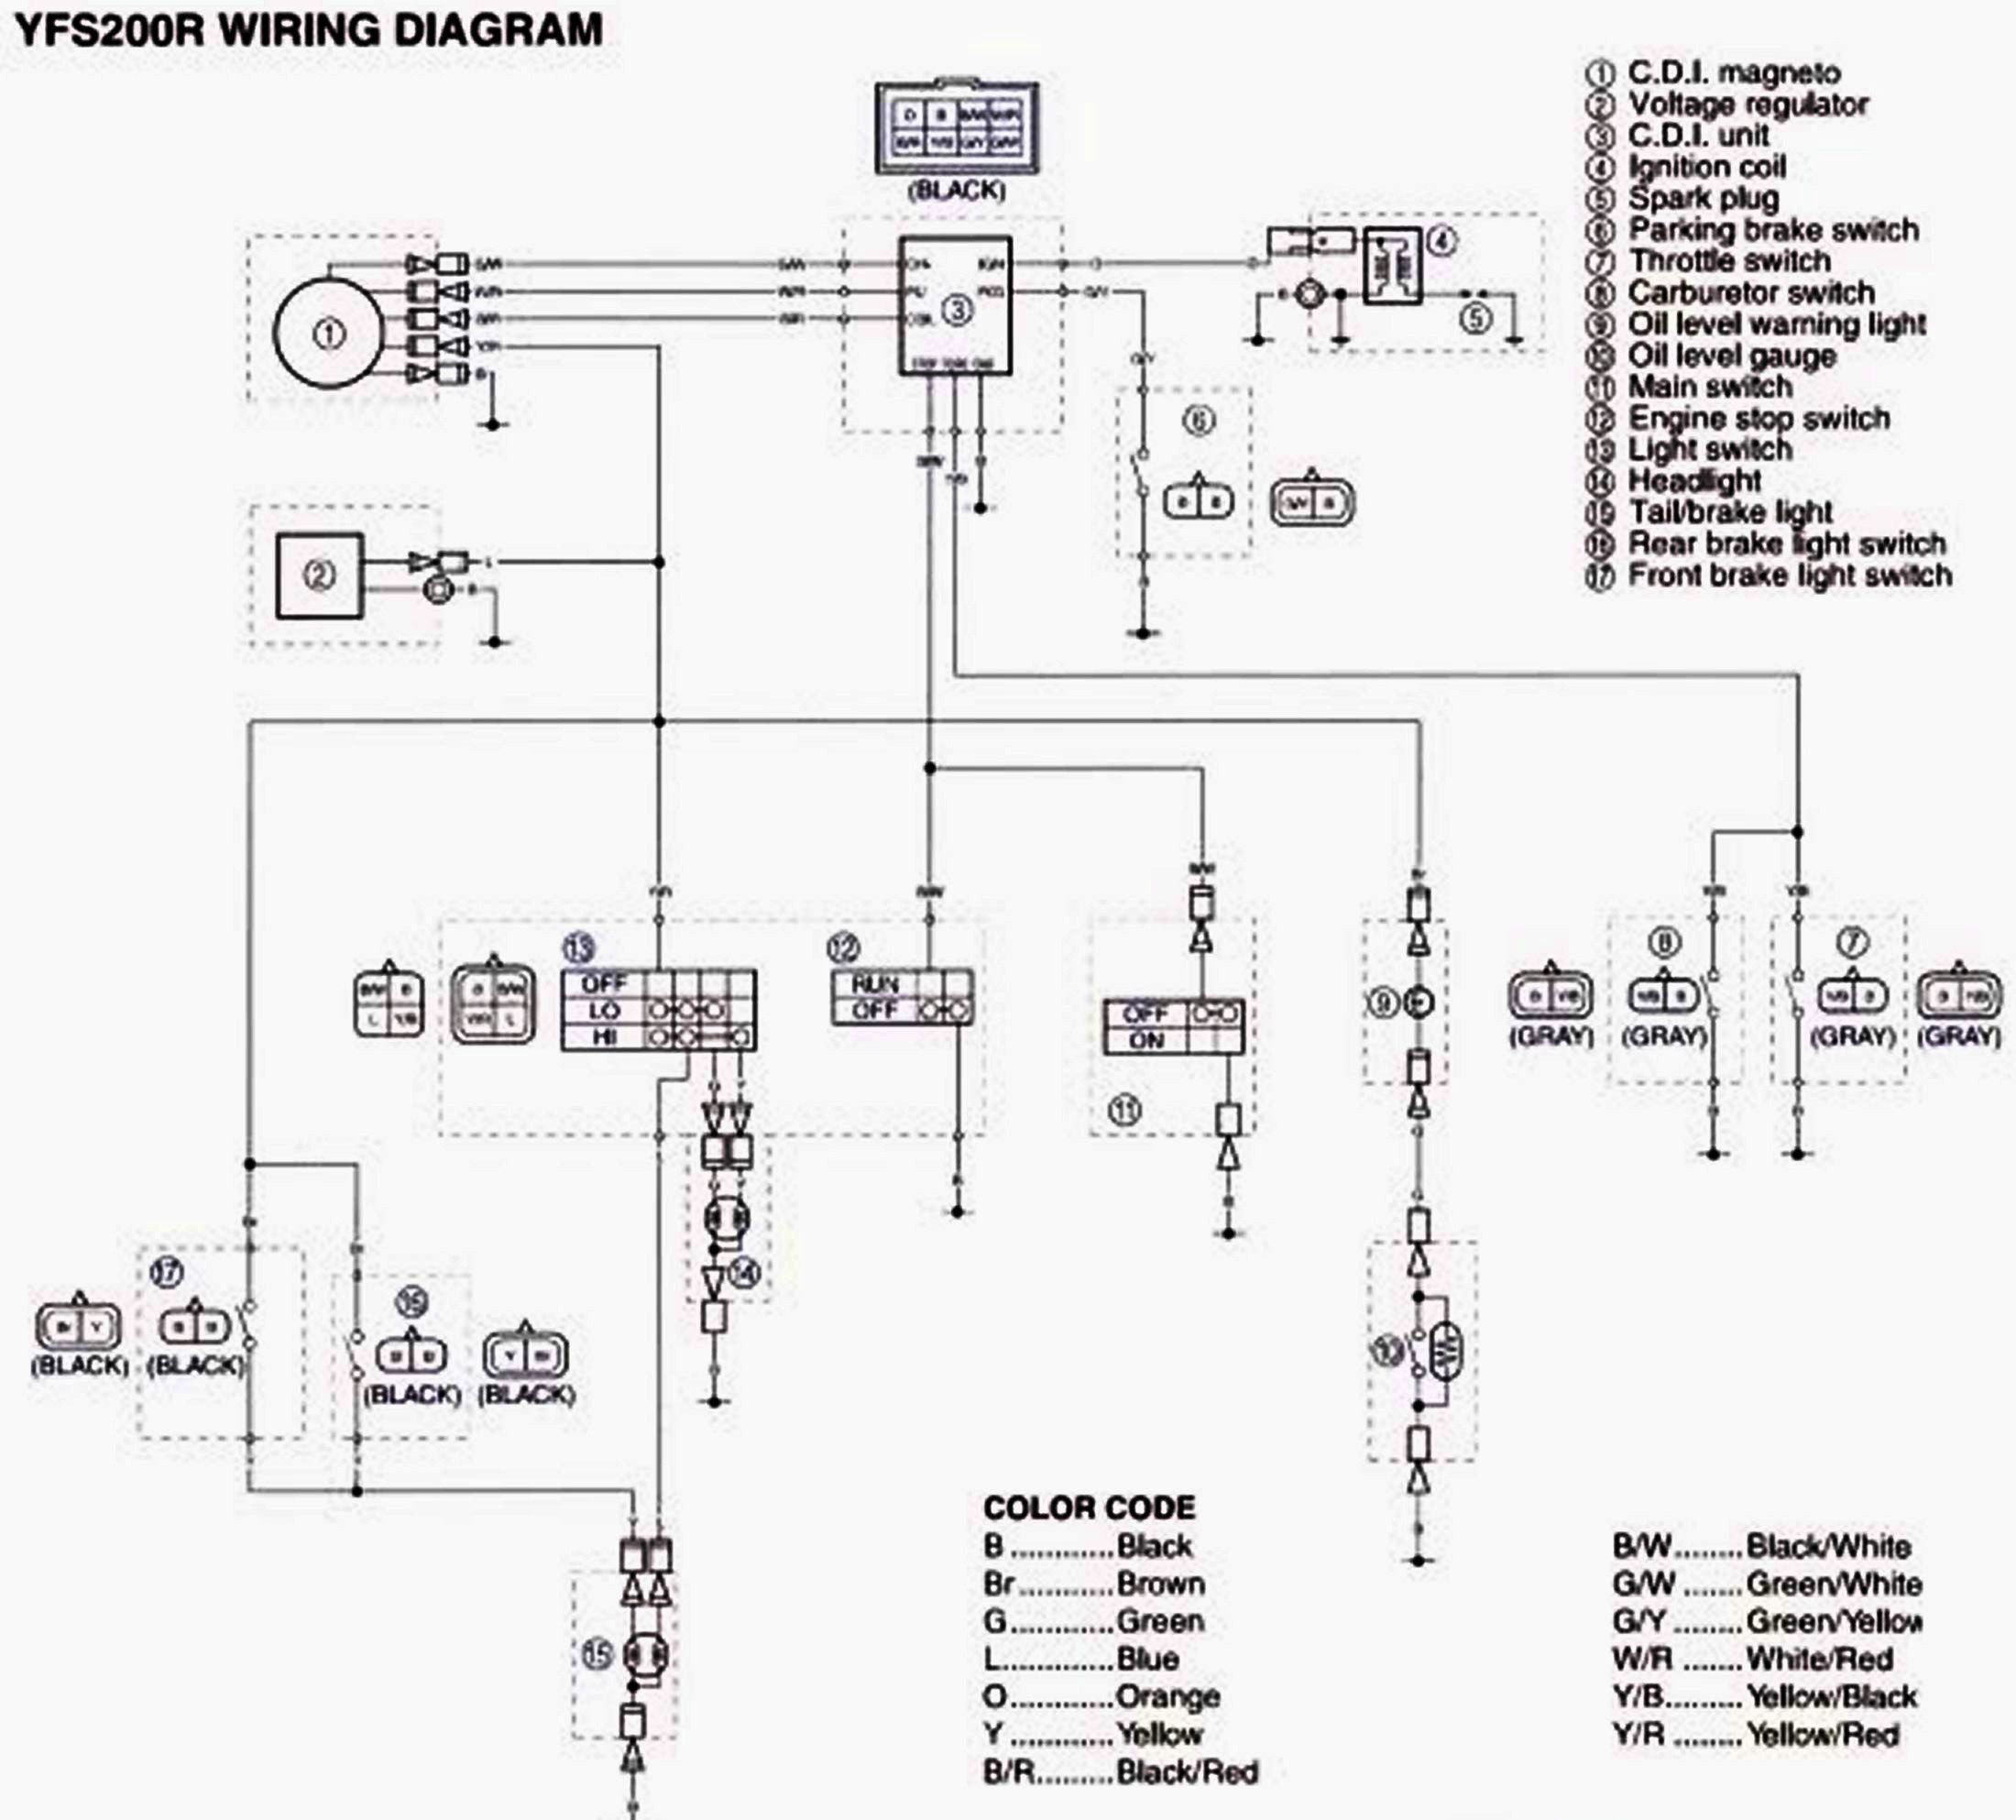 9ED11 2000 Yamaha Warrior Wiring Harness | Wiring LibraryWiring Library